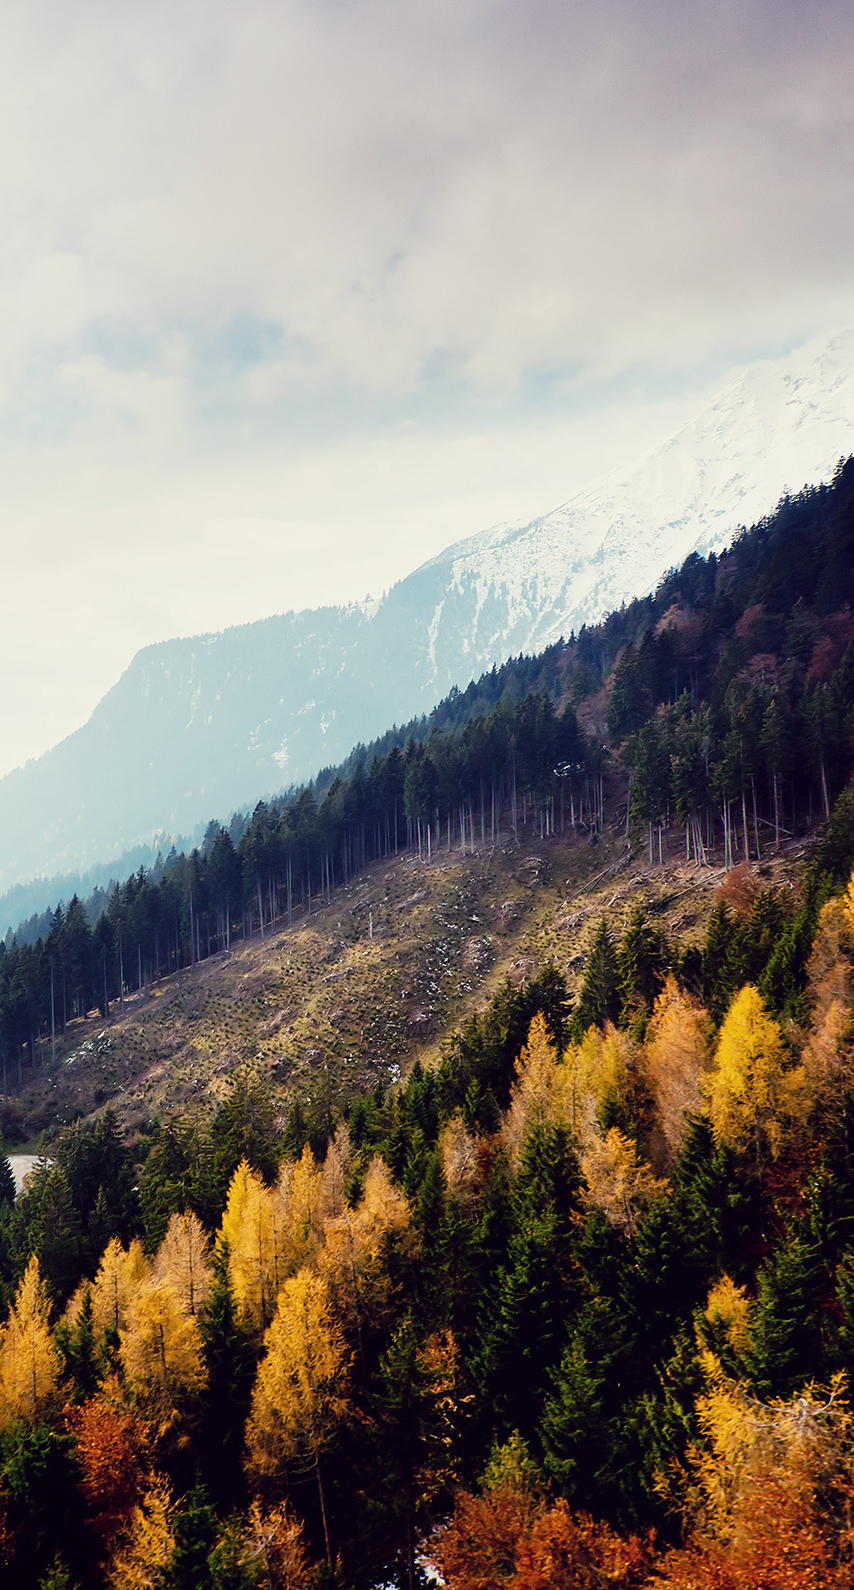 outdoors, daylight, scenic, conifer, hike